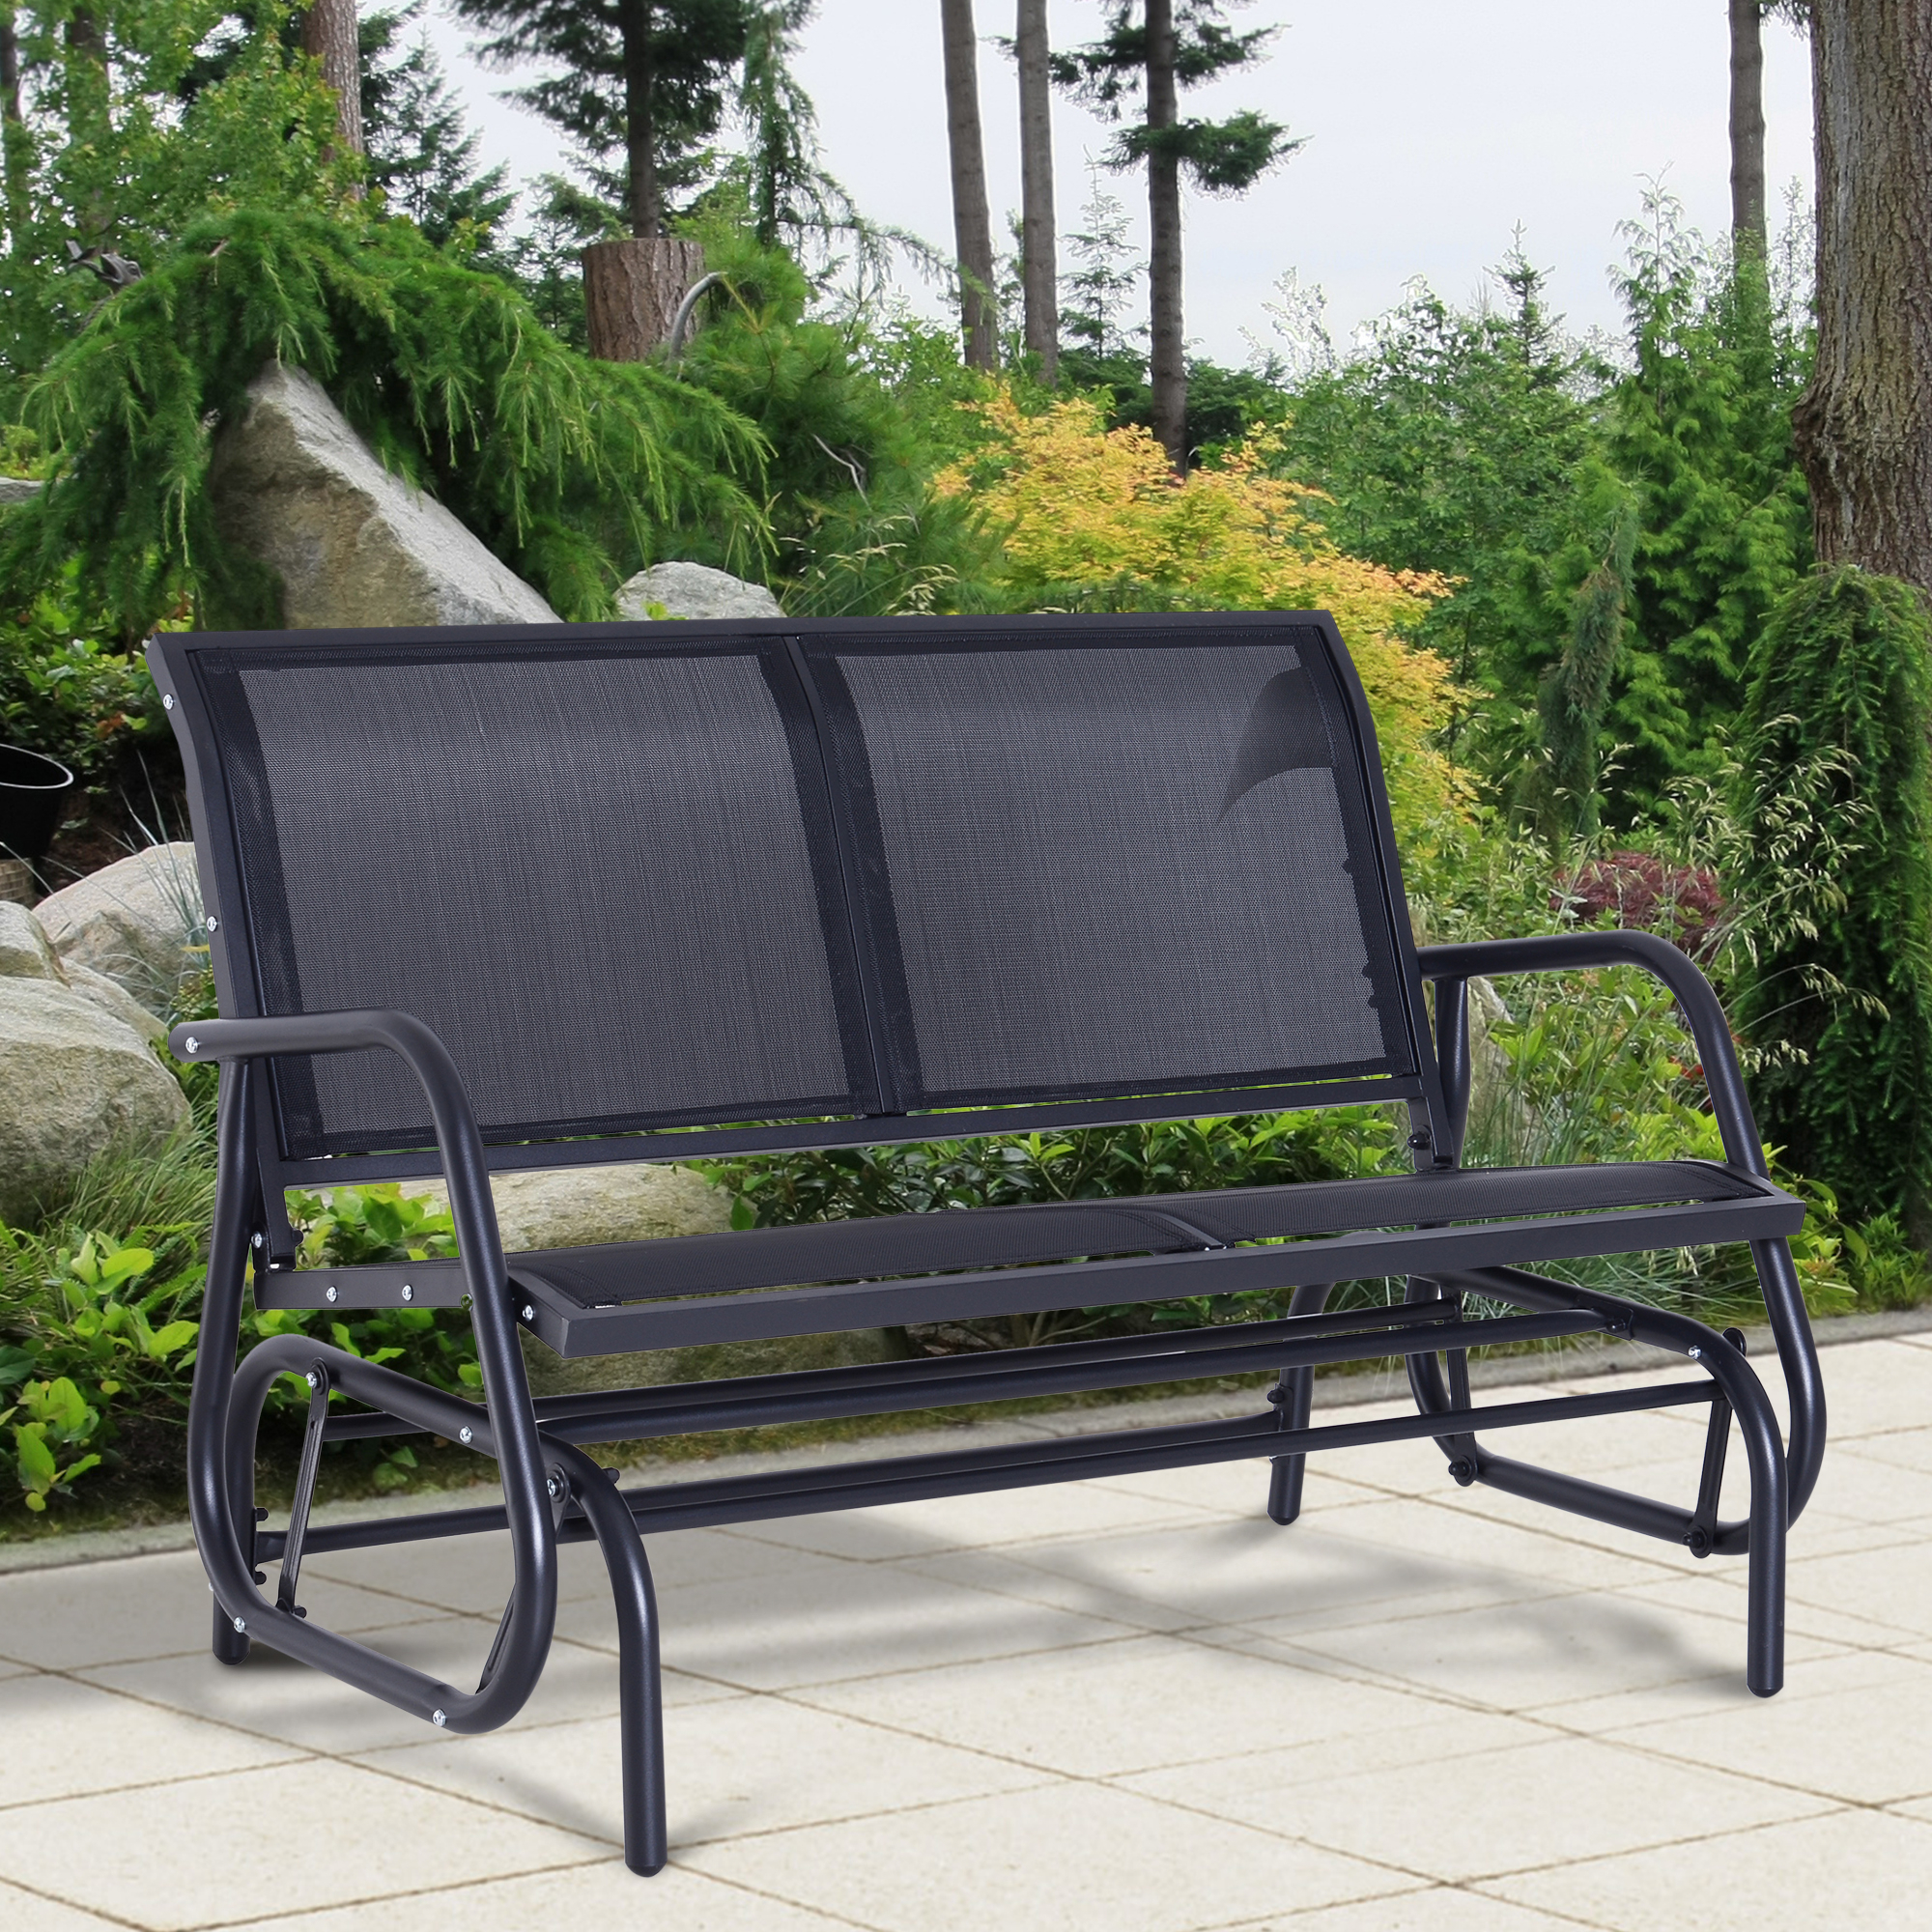 Details About Outsunny Patio Garden Glider Bench 2 Person Double Swing Chair Rocker Deck Black Inside Outdoor Patio Swing Glider Benches (View 21 of 25)